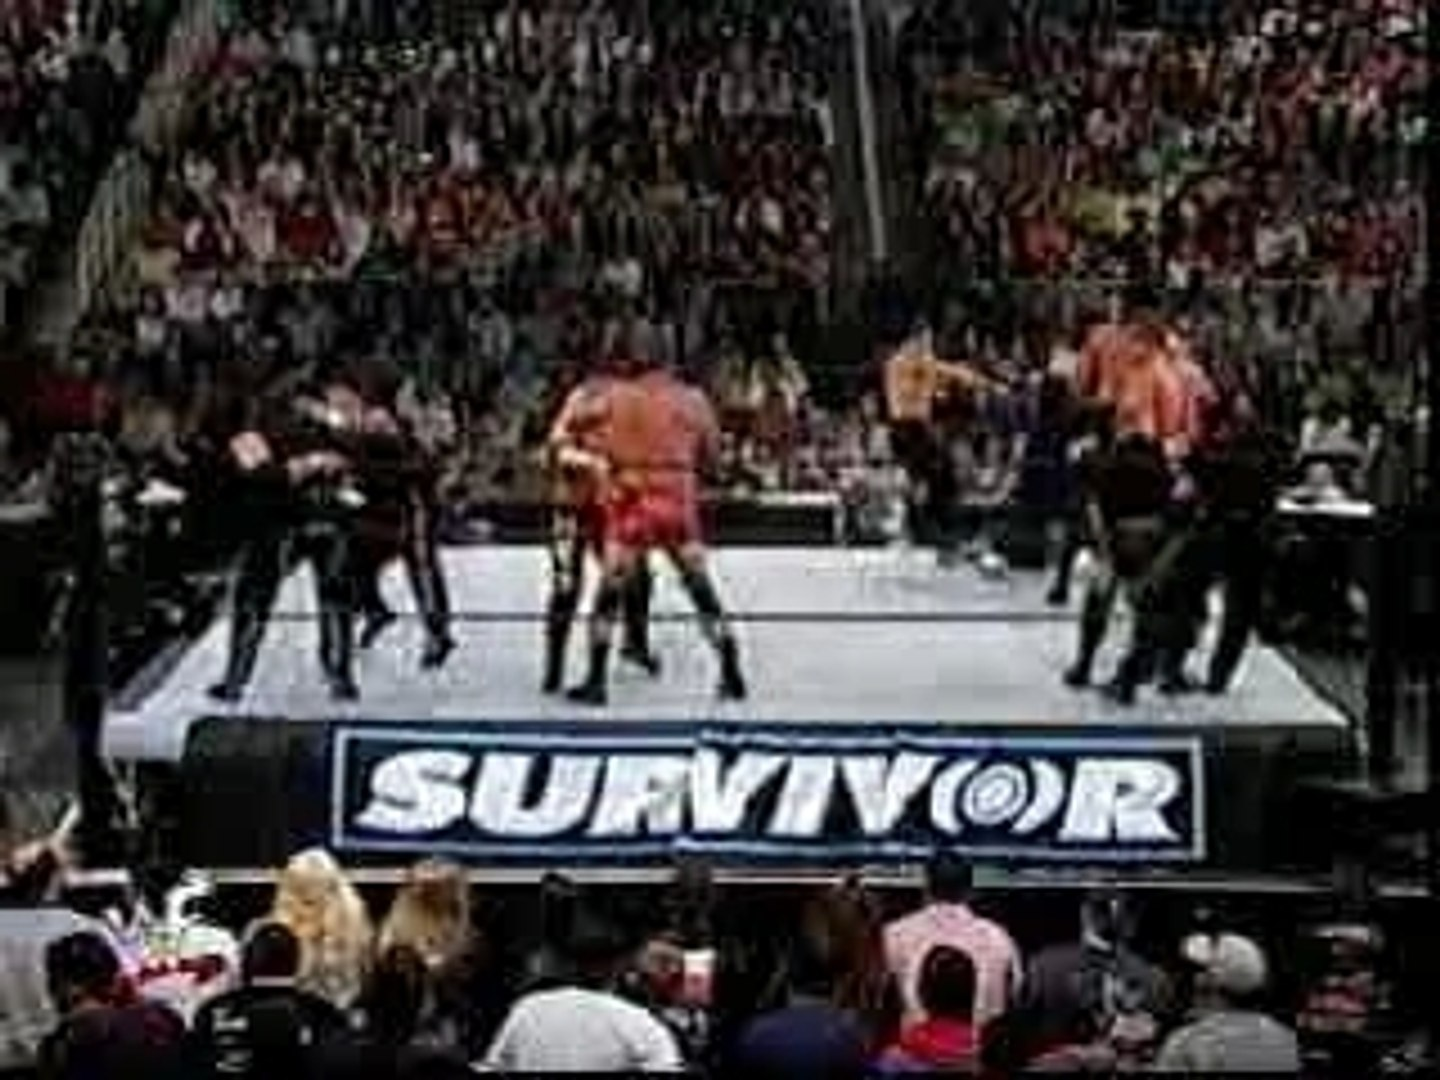 wwf vs ecw battle royal